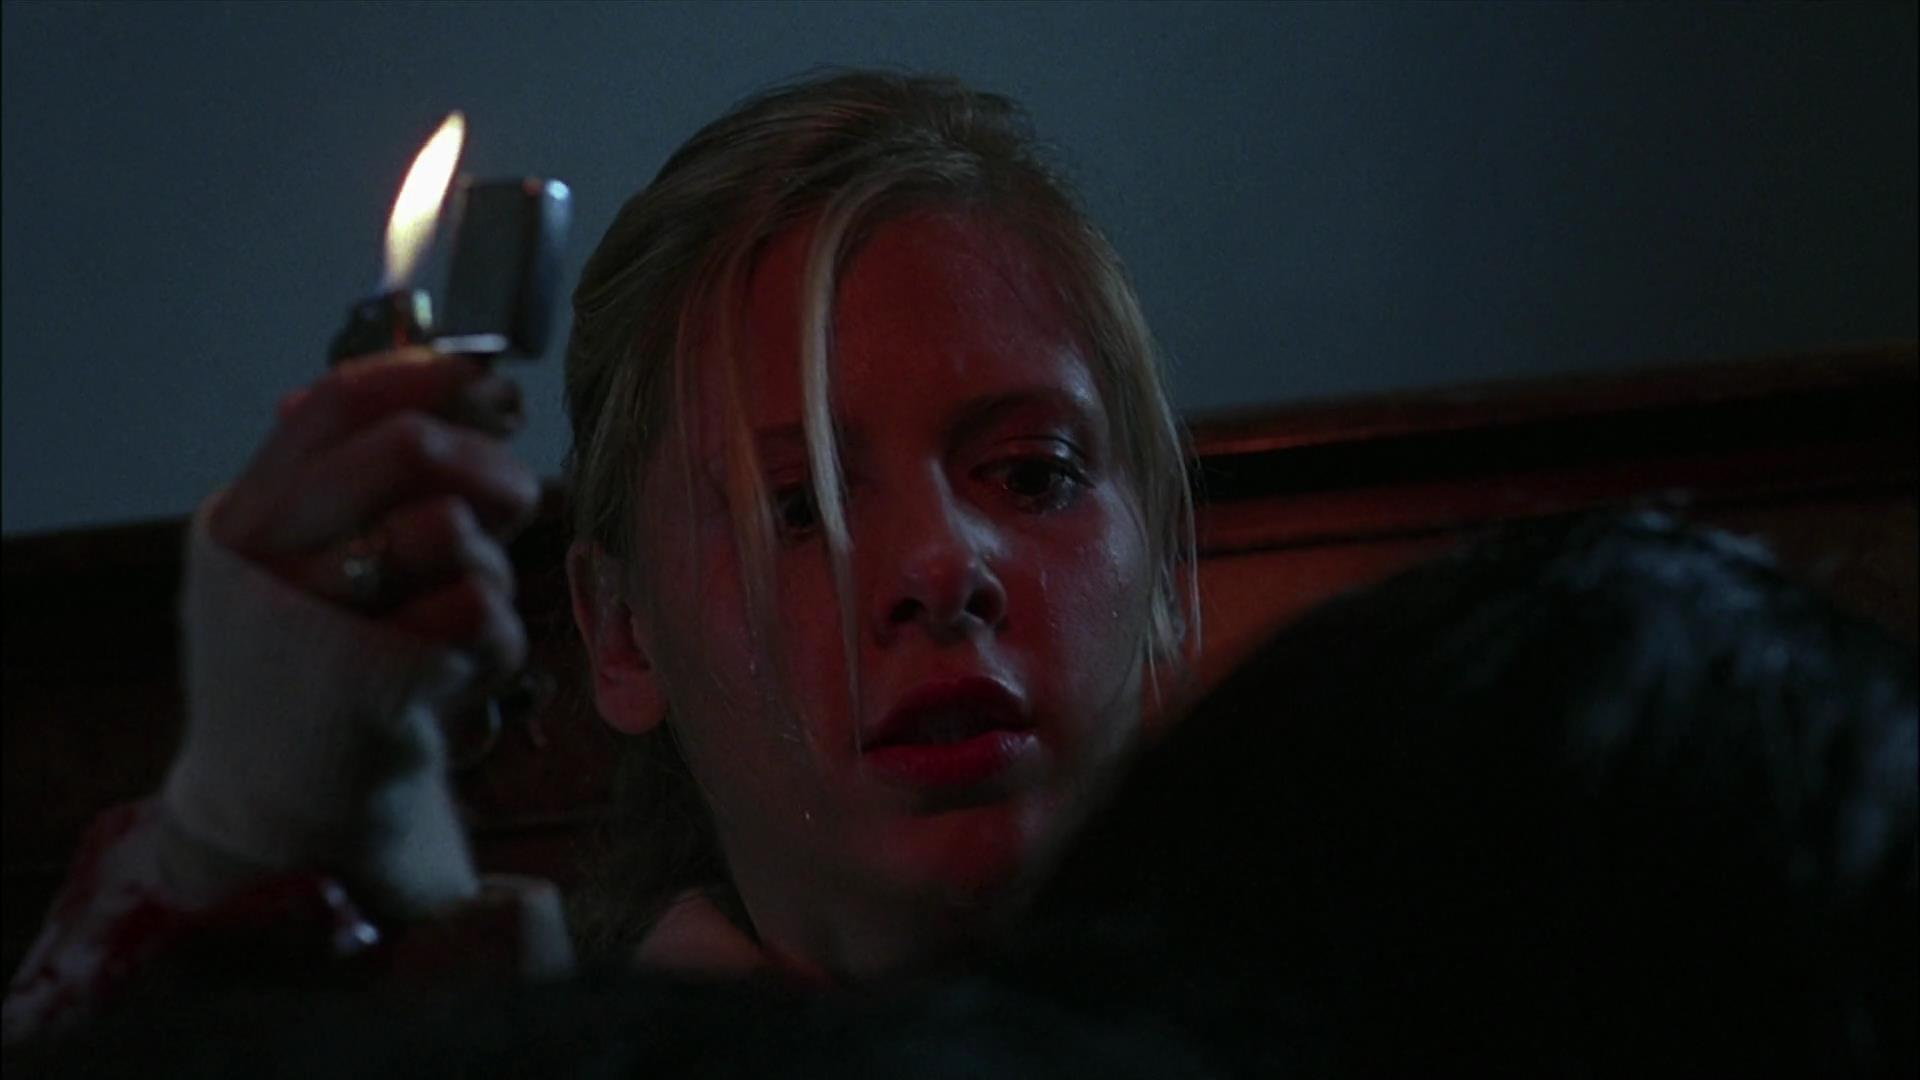 Sarah Michelle Gellar In The Grudge 2004 Horror Actresses Photo 43438317 Fanpop